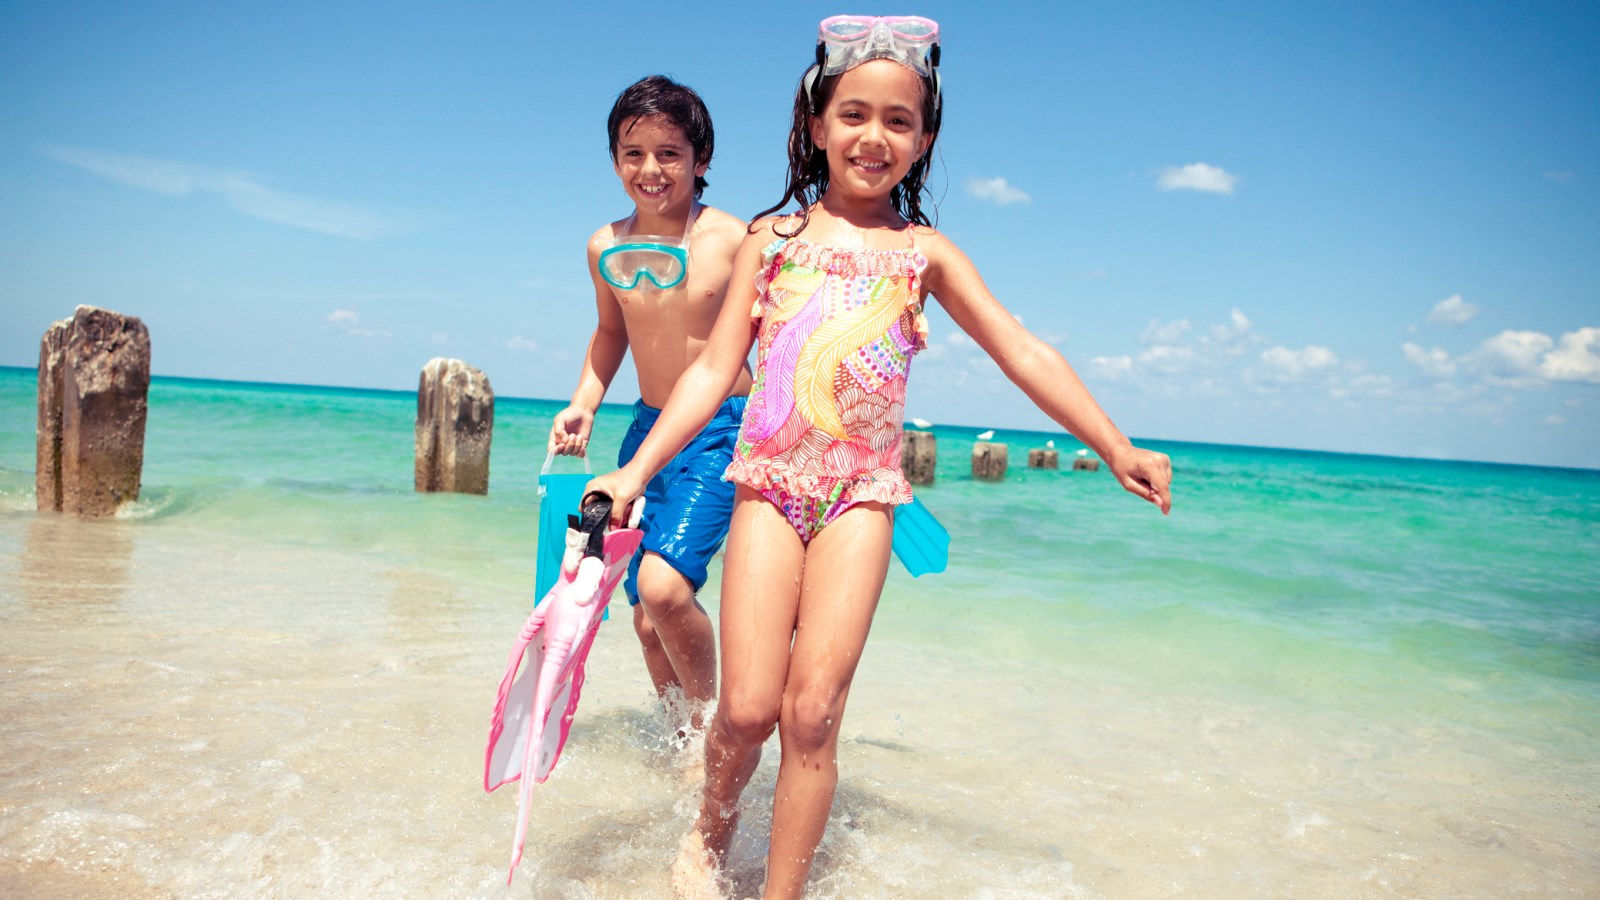 Family Beach Activities | St. Regis Bal Harbour Resort